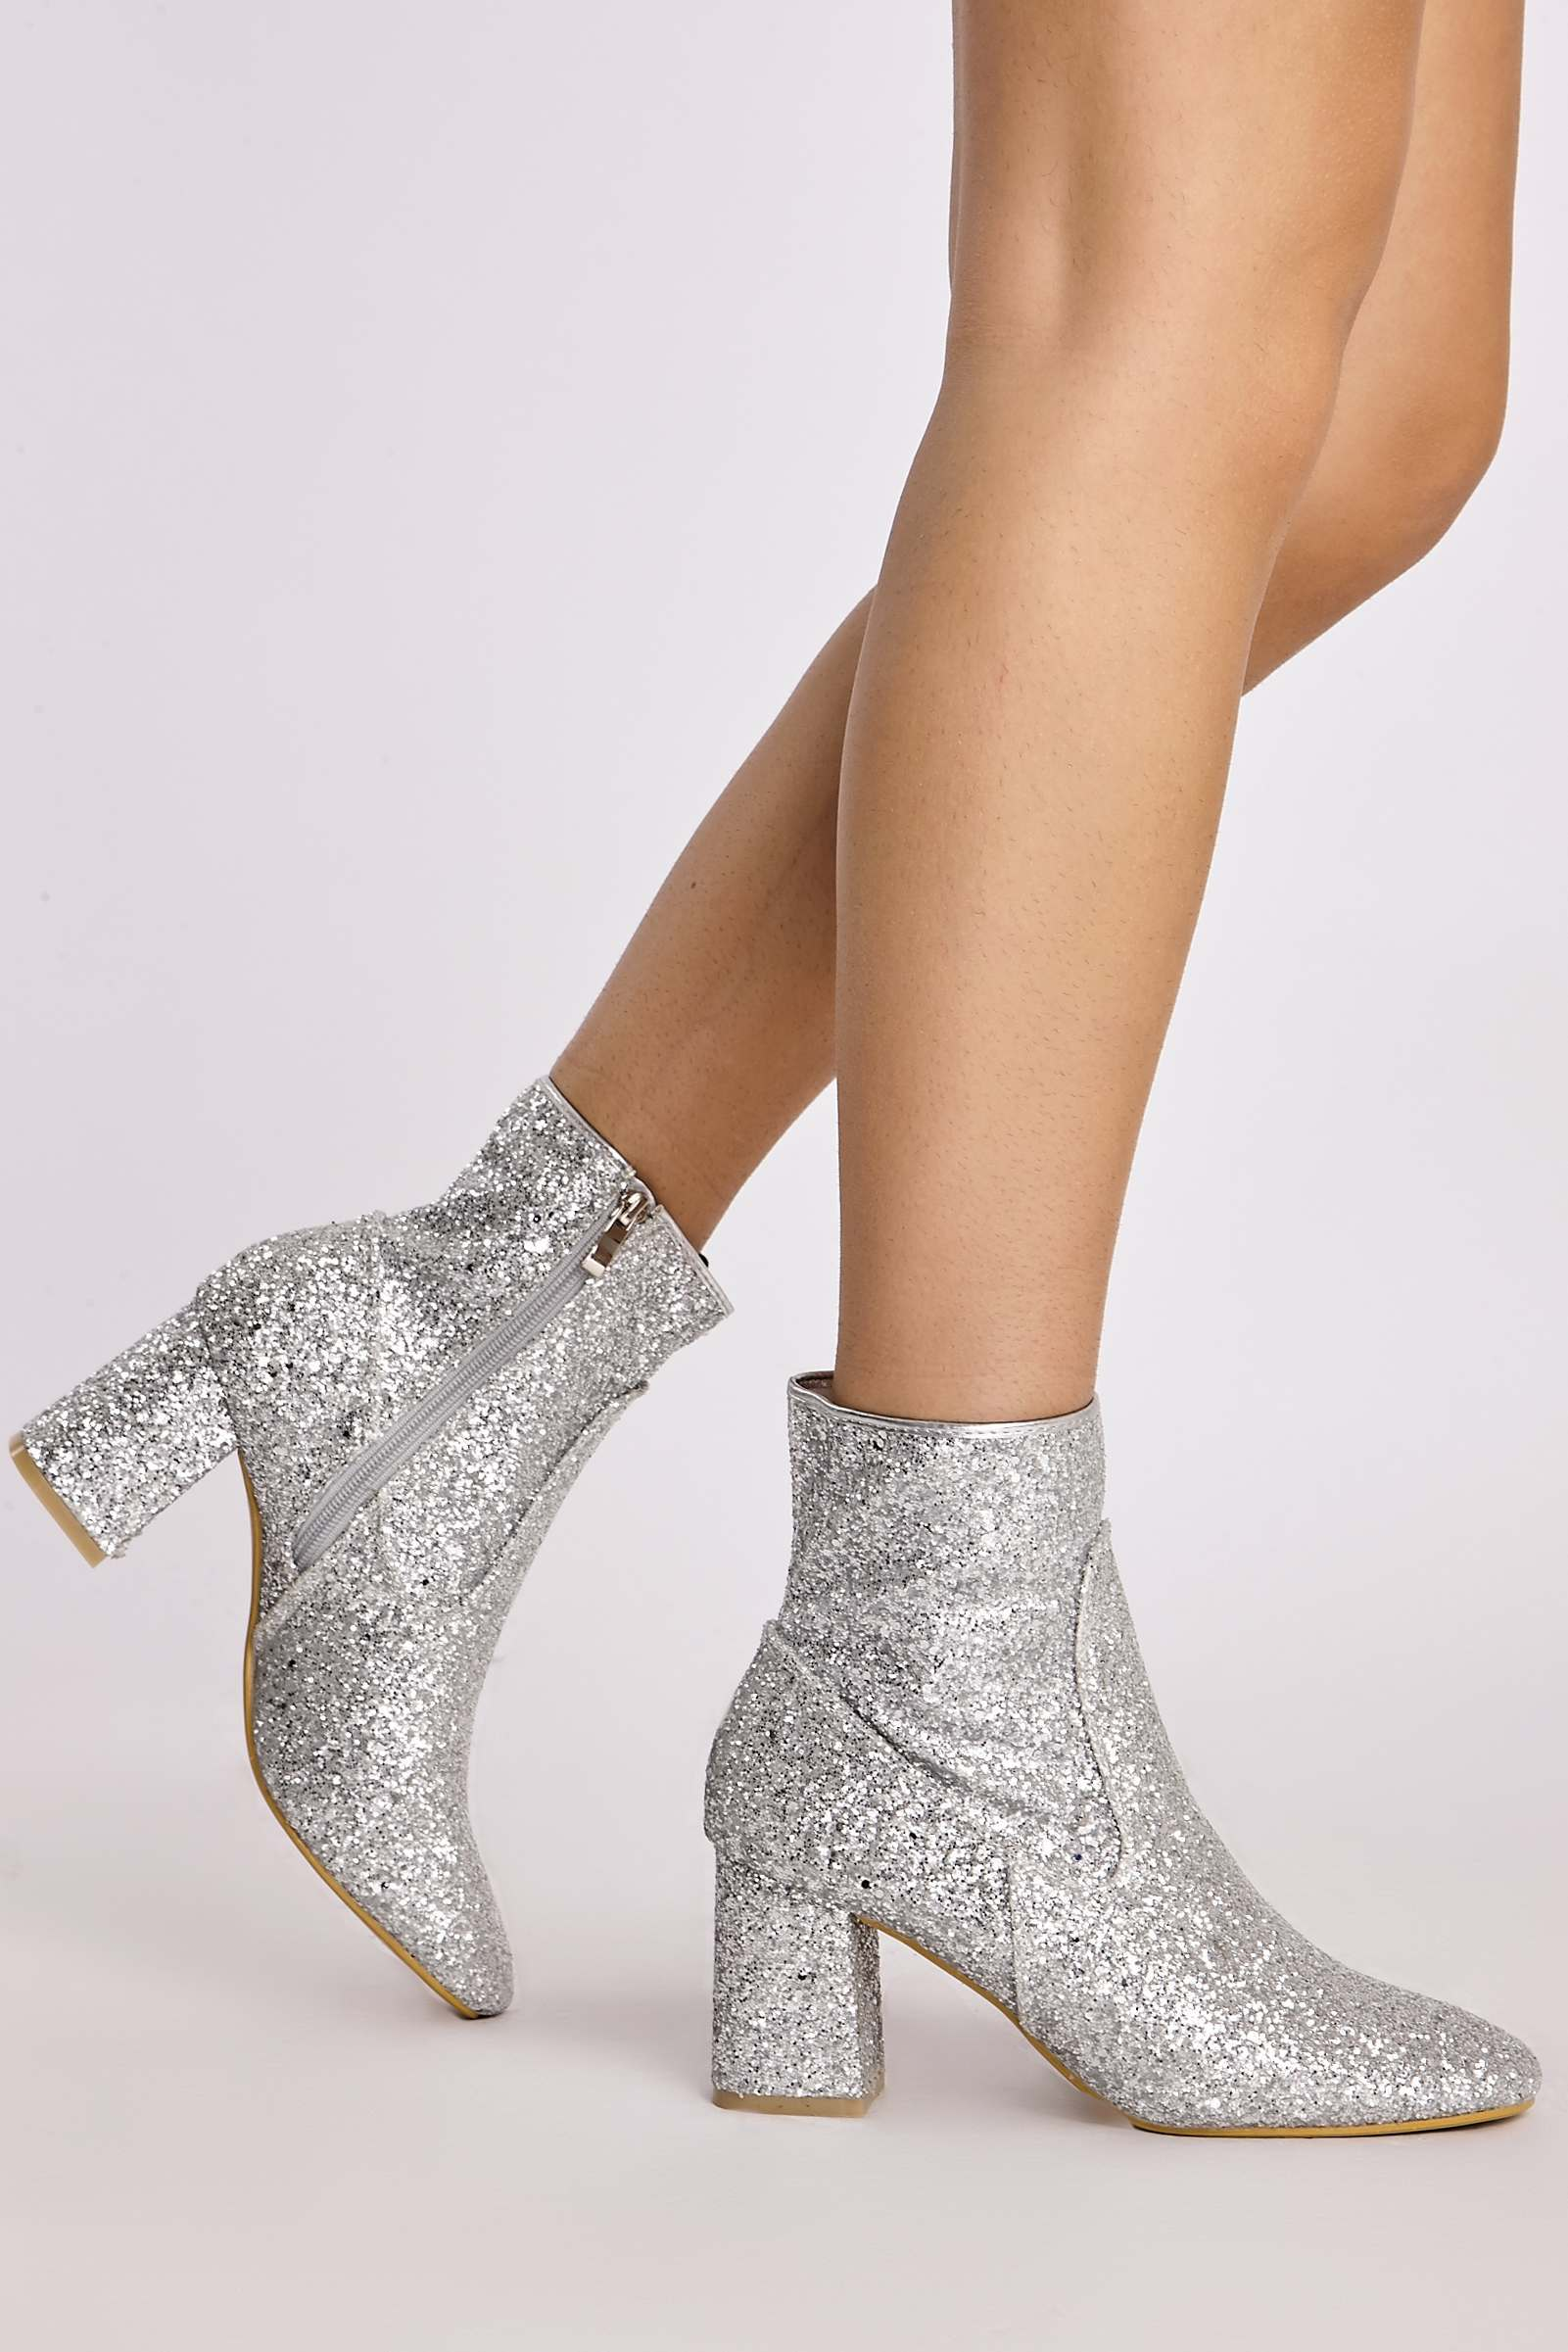 Silver Boots  Idelle Silver Glitter Block Heel Ankle Boots